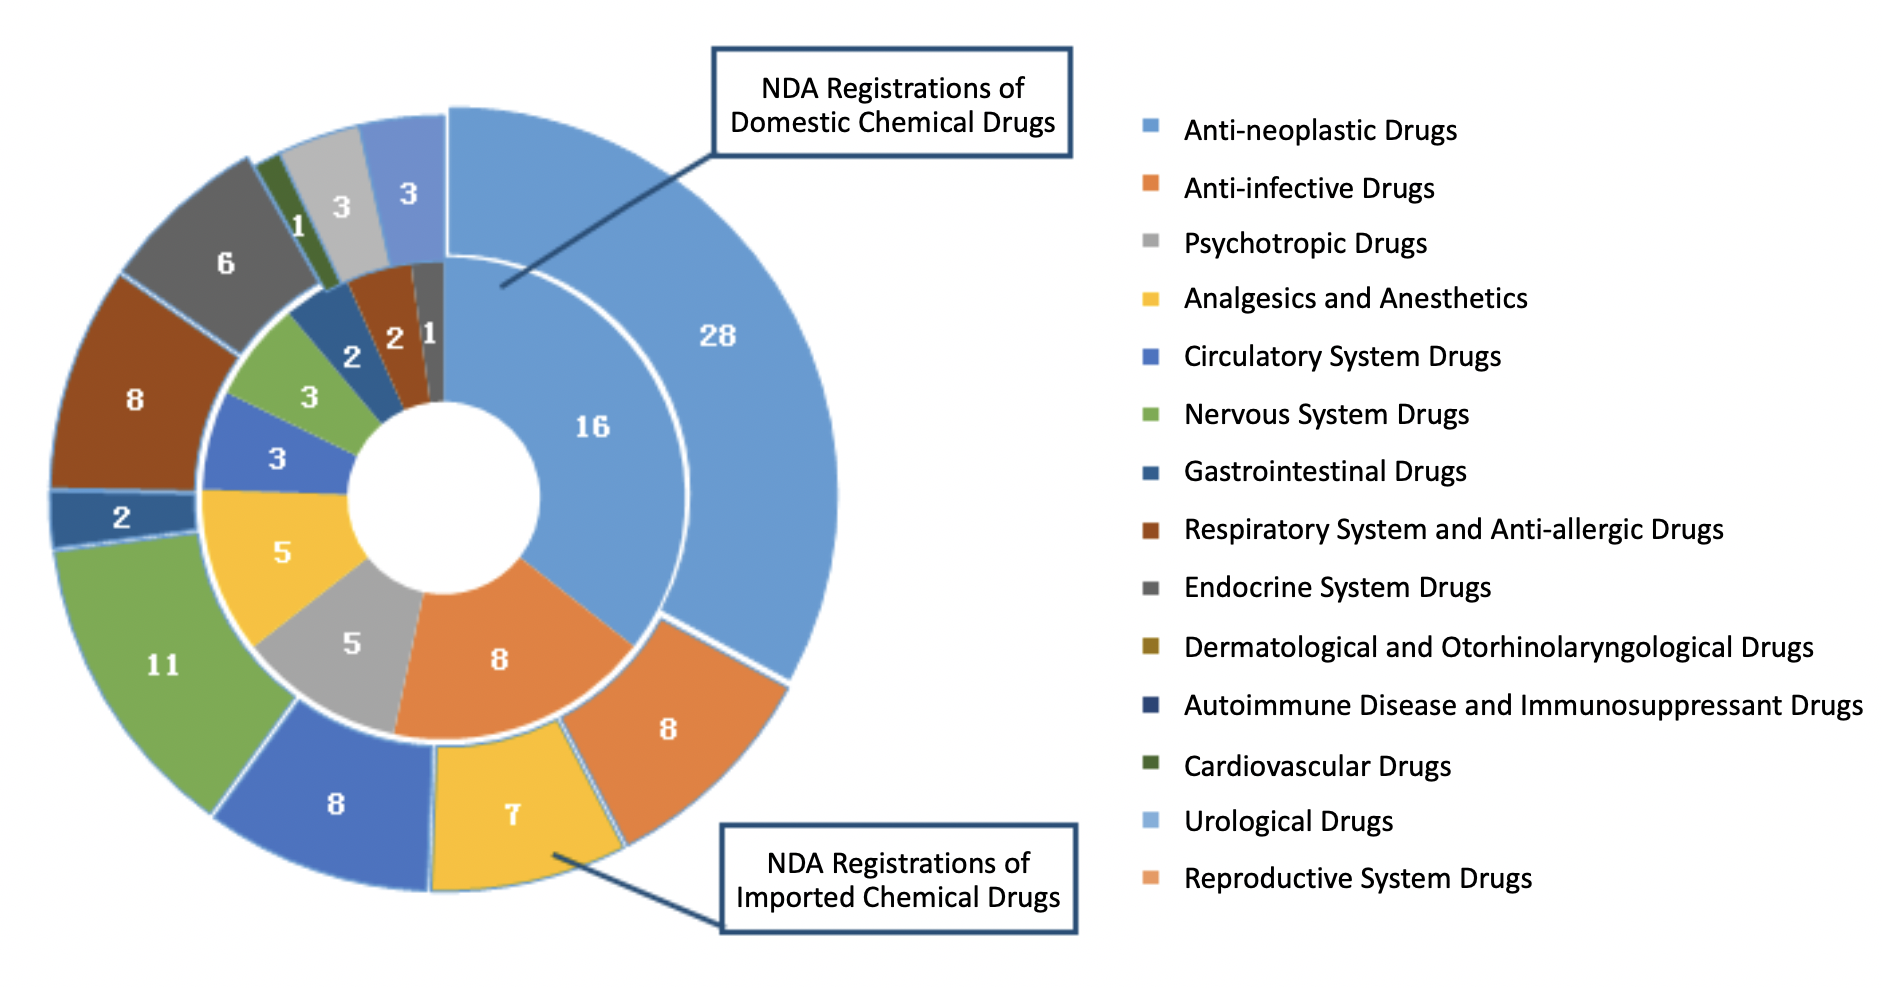 Fig. 6 Number of NDA Registrations for Different Indications of Chemical Drugs in 2019